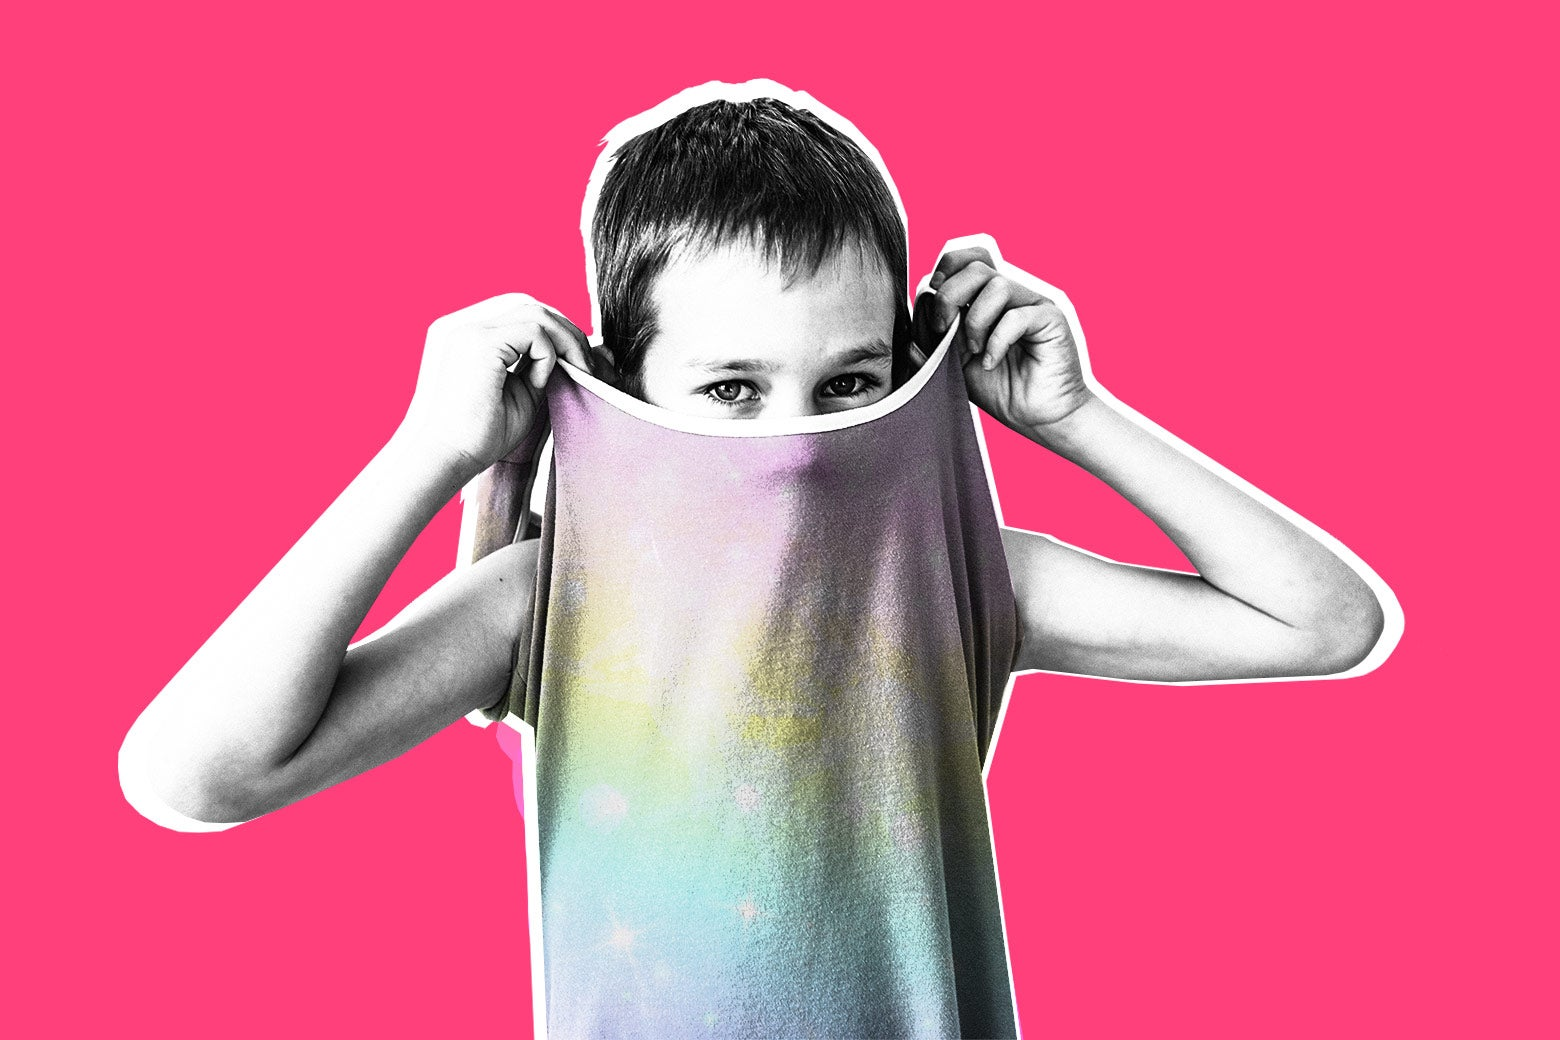 Child removing a dress by pulling it over their head, against a pink background.